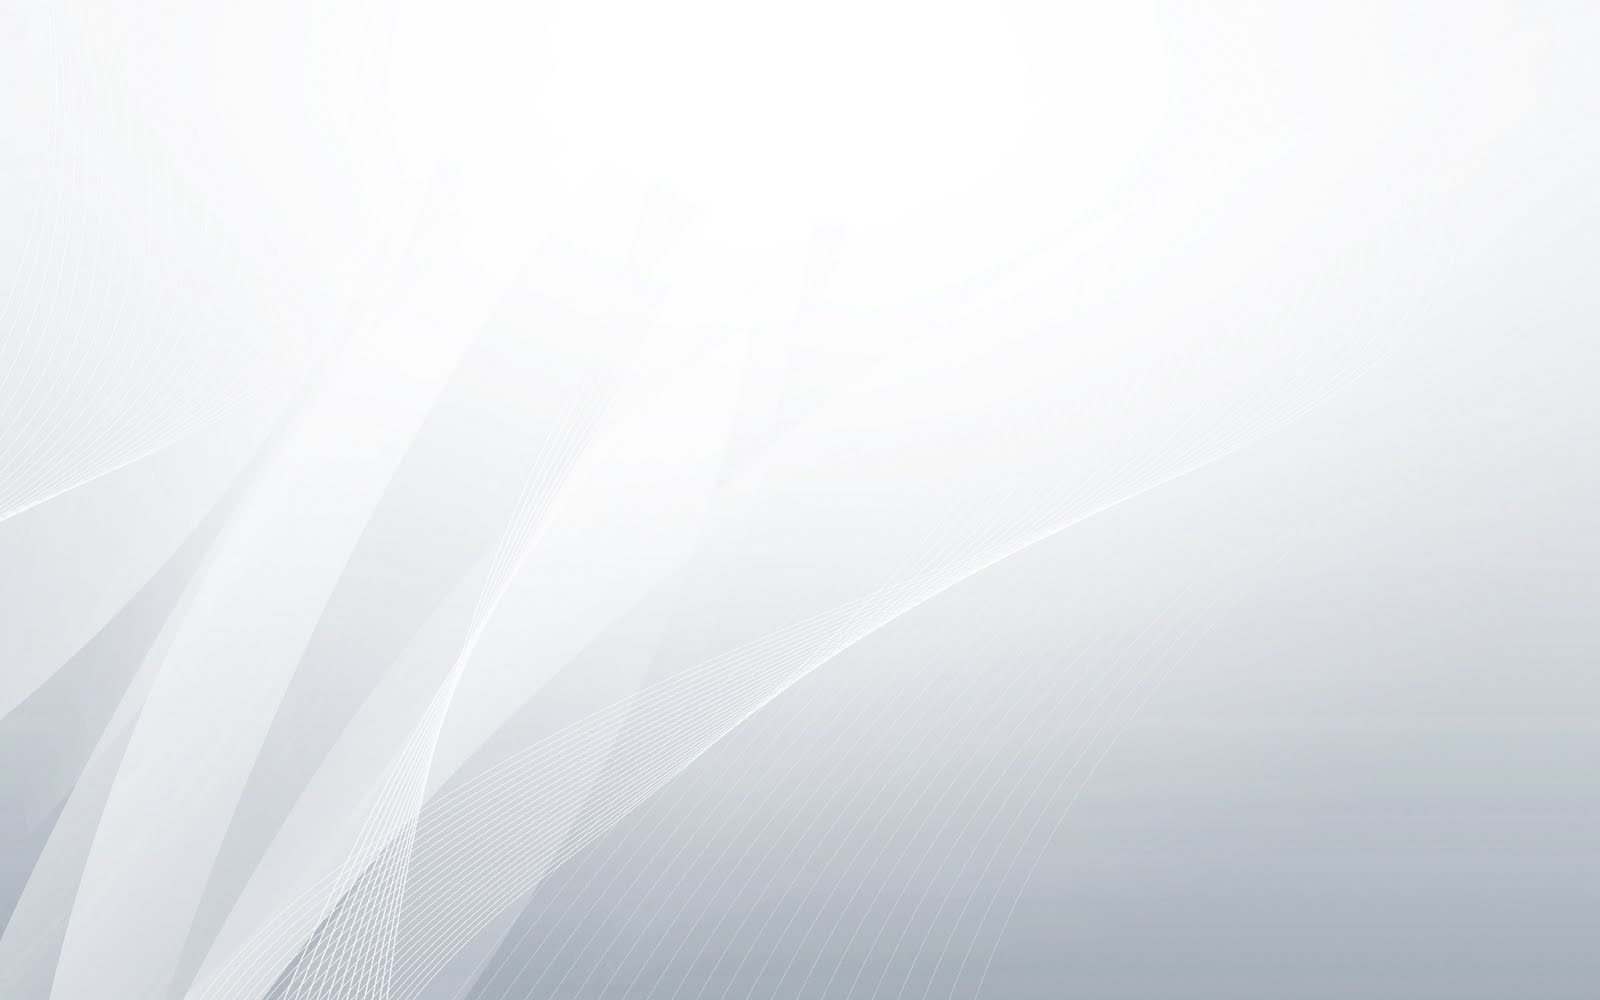 White Silver Line Waves HD Wallpapers | Epic Desktop Backgrounds